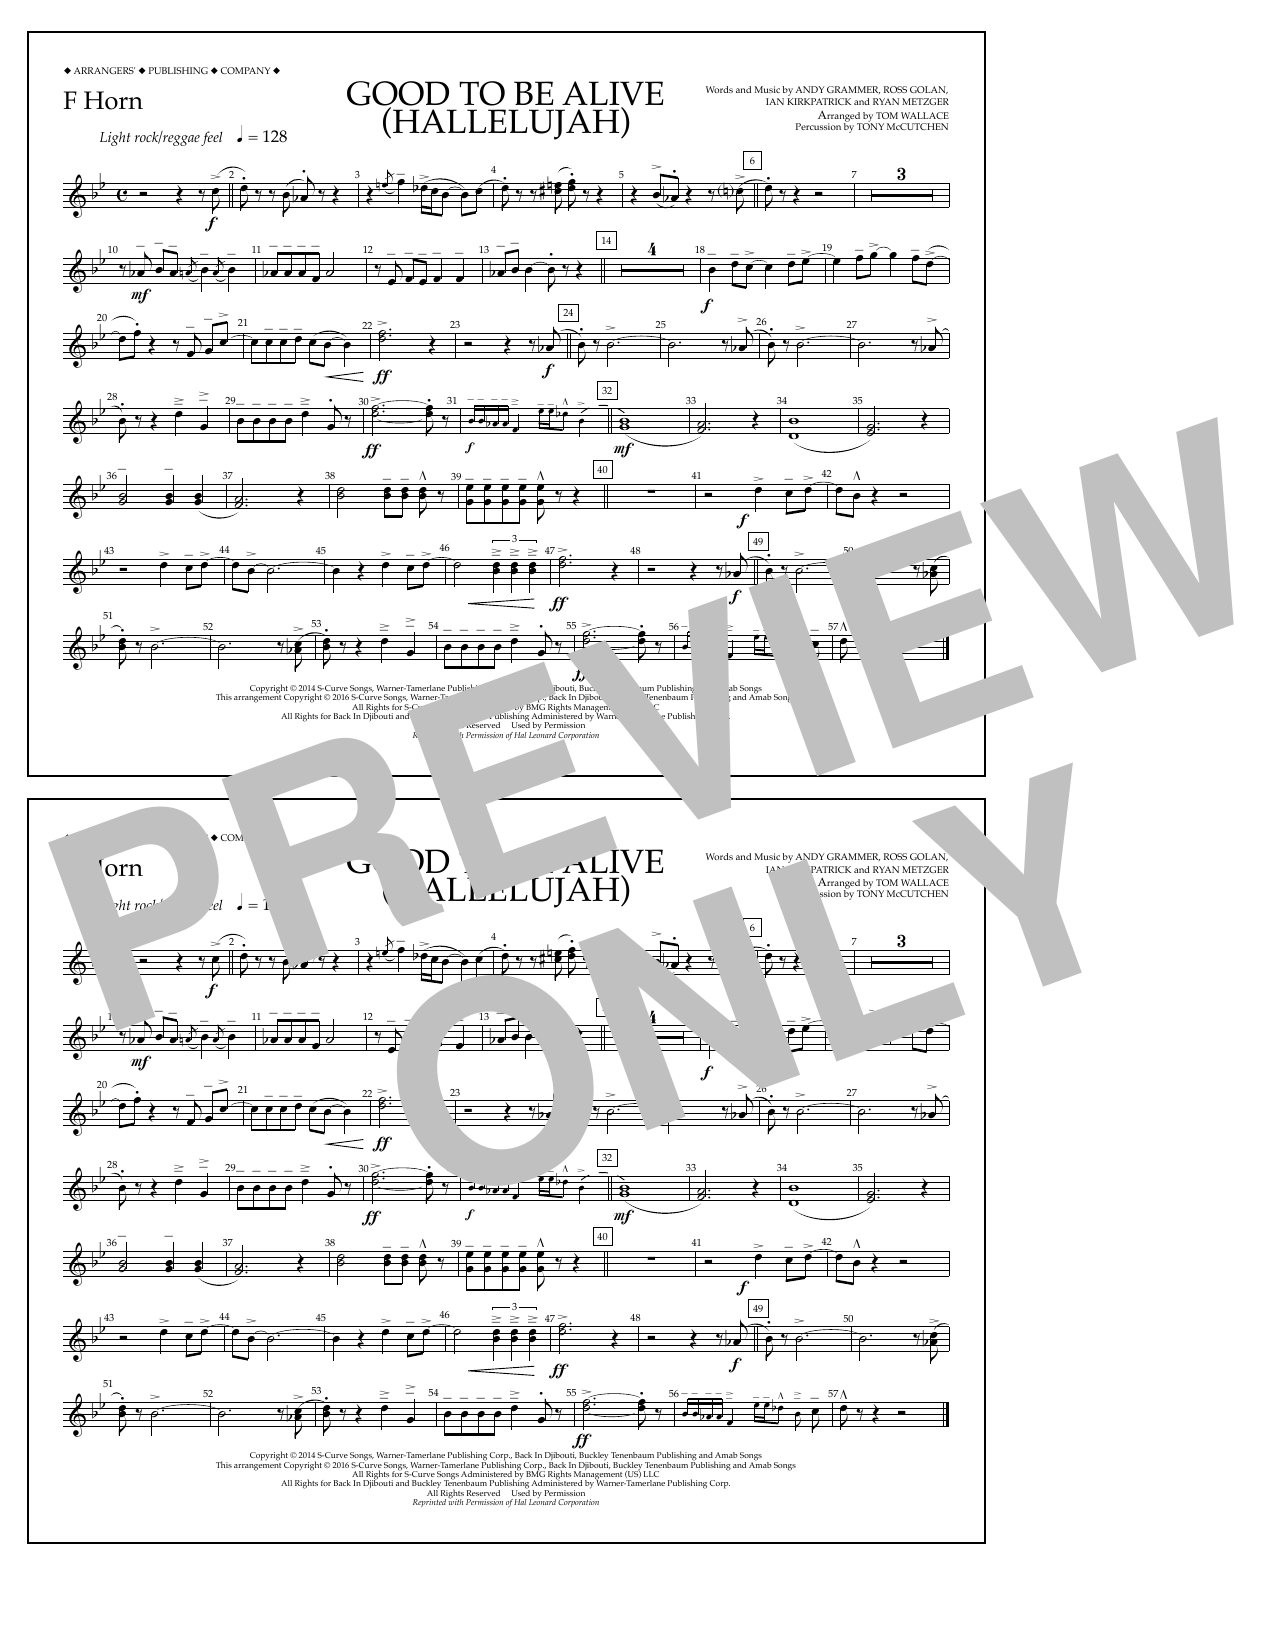 Good to Be Alive (Hallelujah) - F Horn Sheet Music